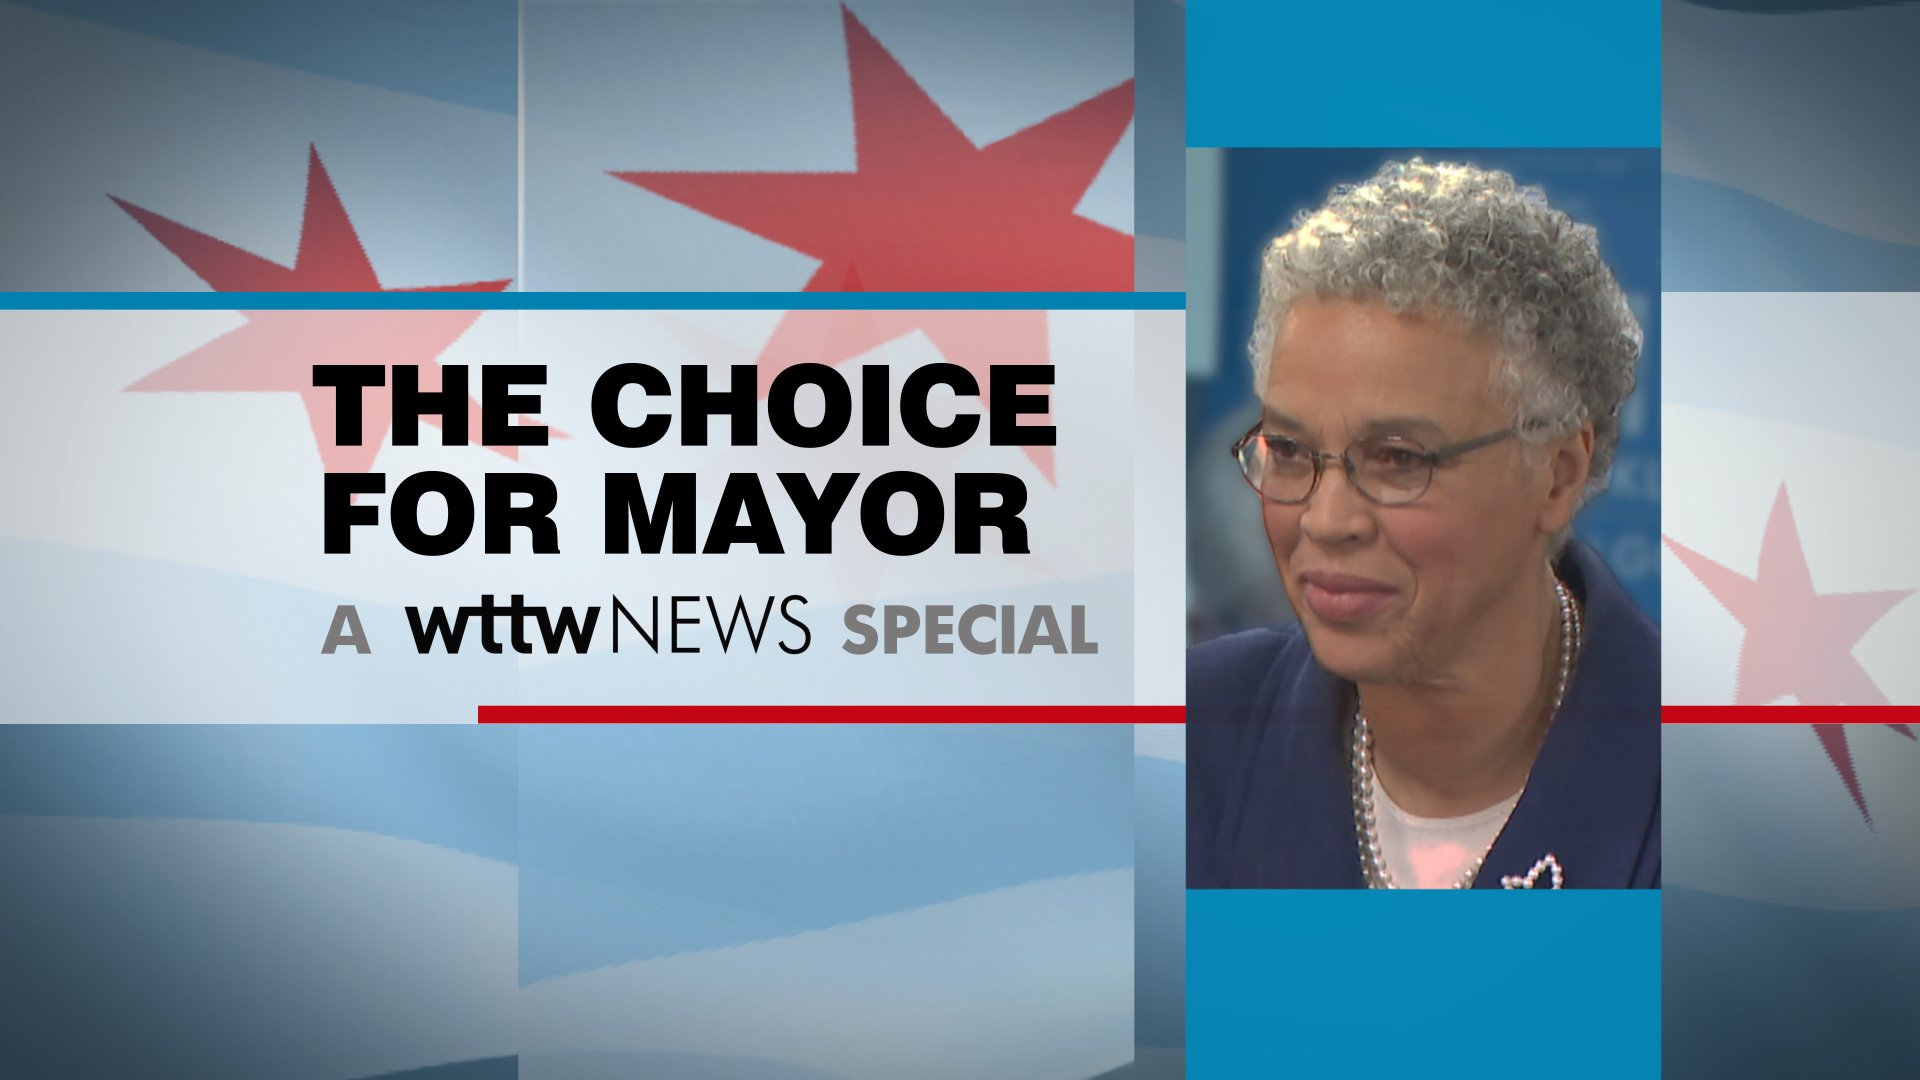 The Choice for Mayor 2019: Toni Preckwinkle